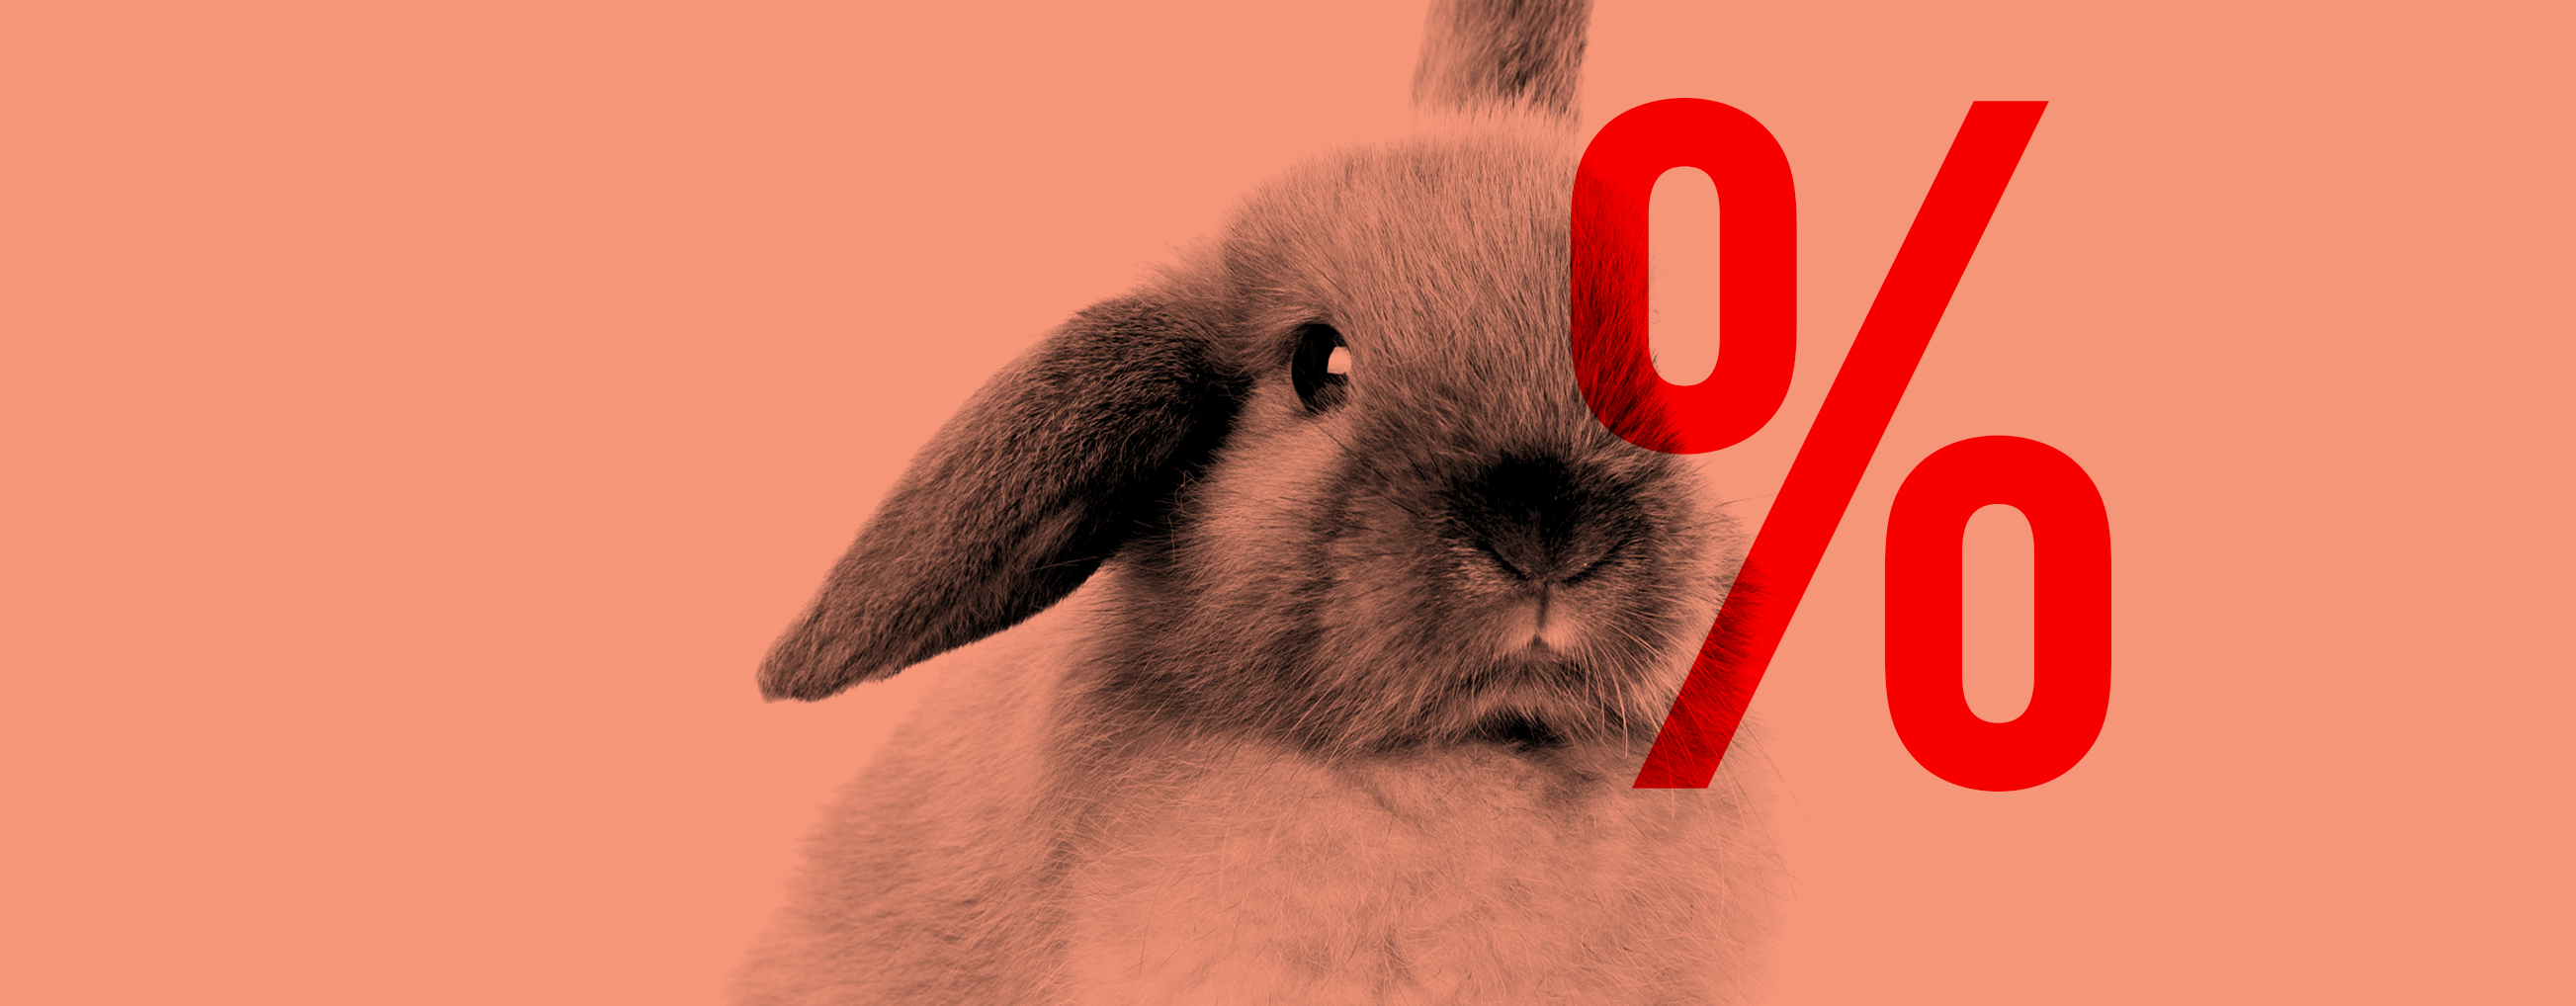 EASTER SALES - UP TO 50% OFF